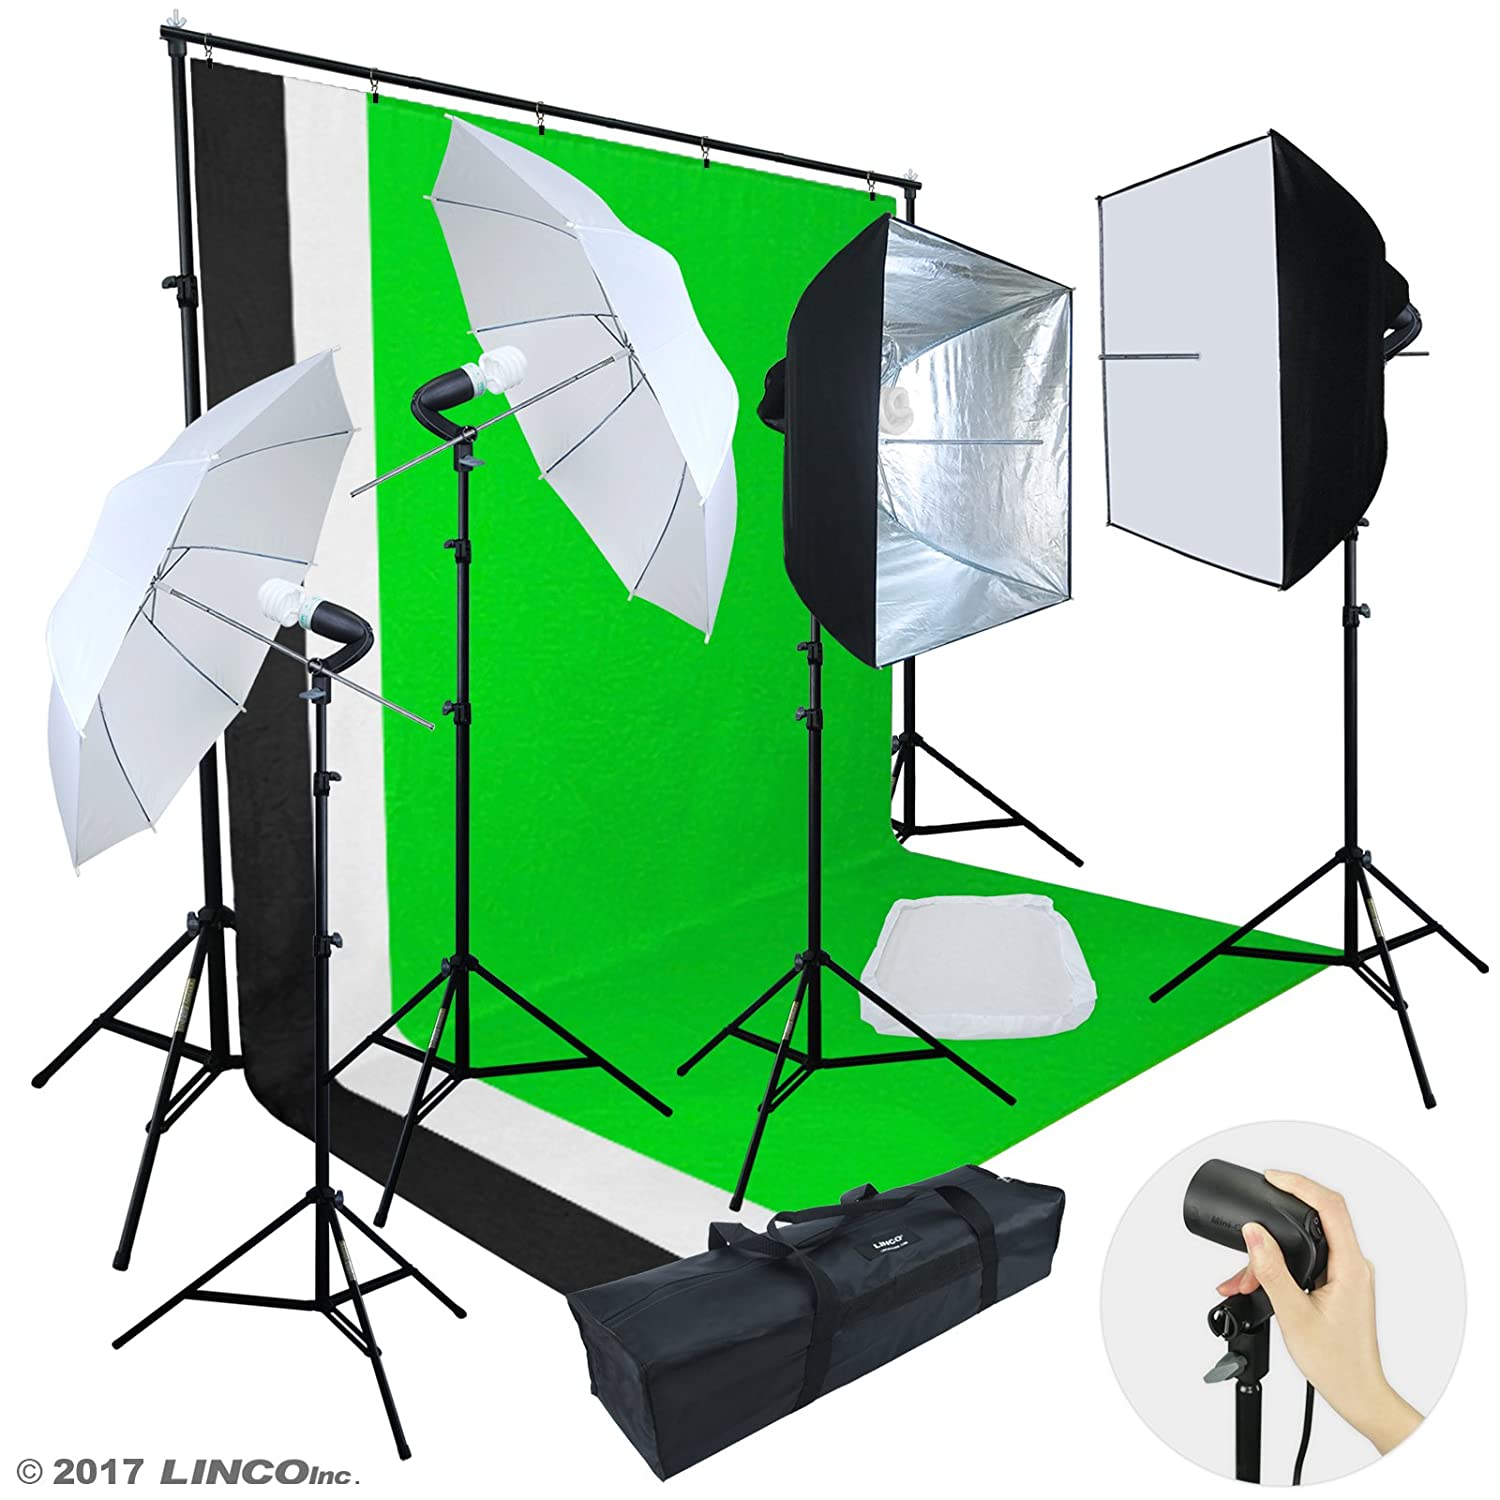 Linco Lincostore Photo Video Studio Light Kit AM142